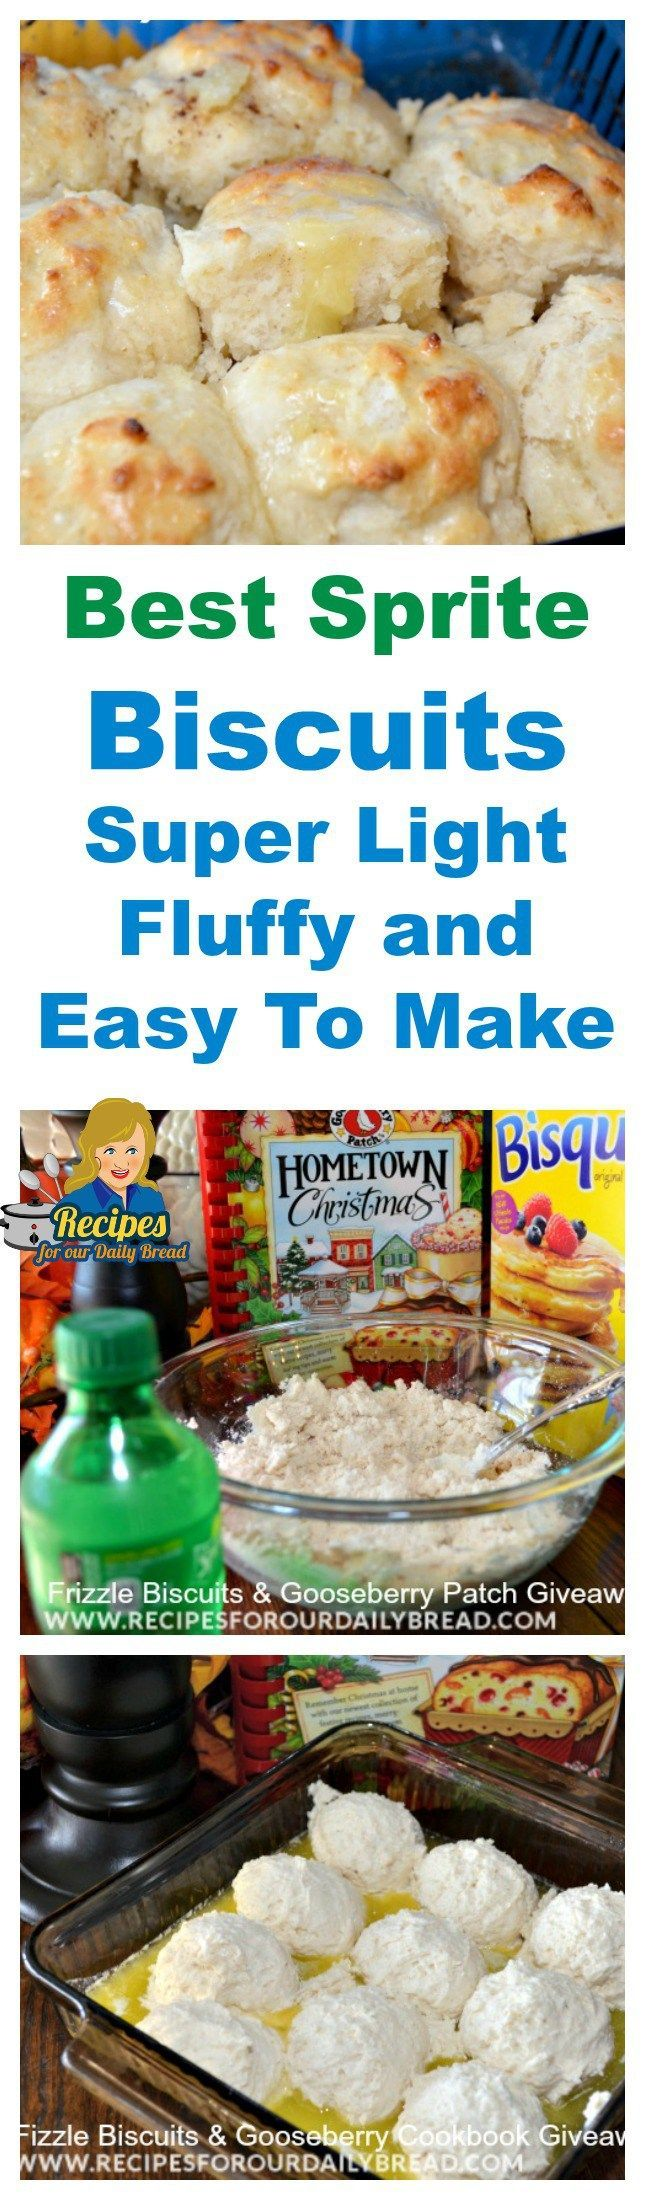 Best Sprite Biscuits Super Light Fluffy and Easy To Make